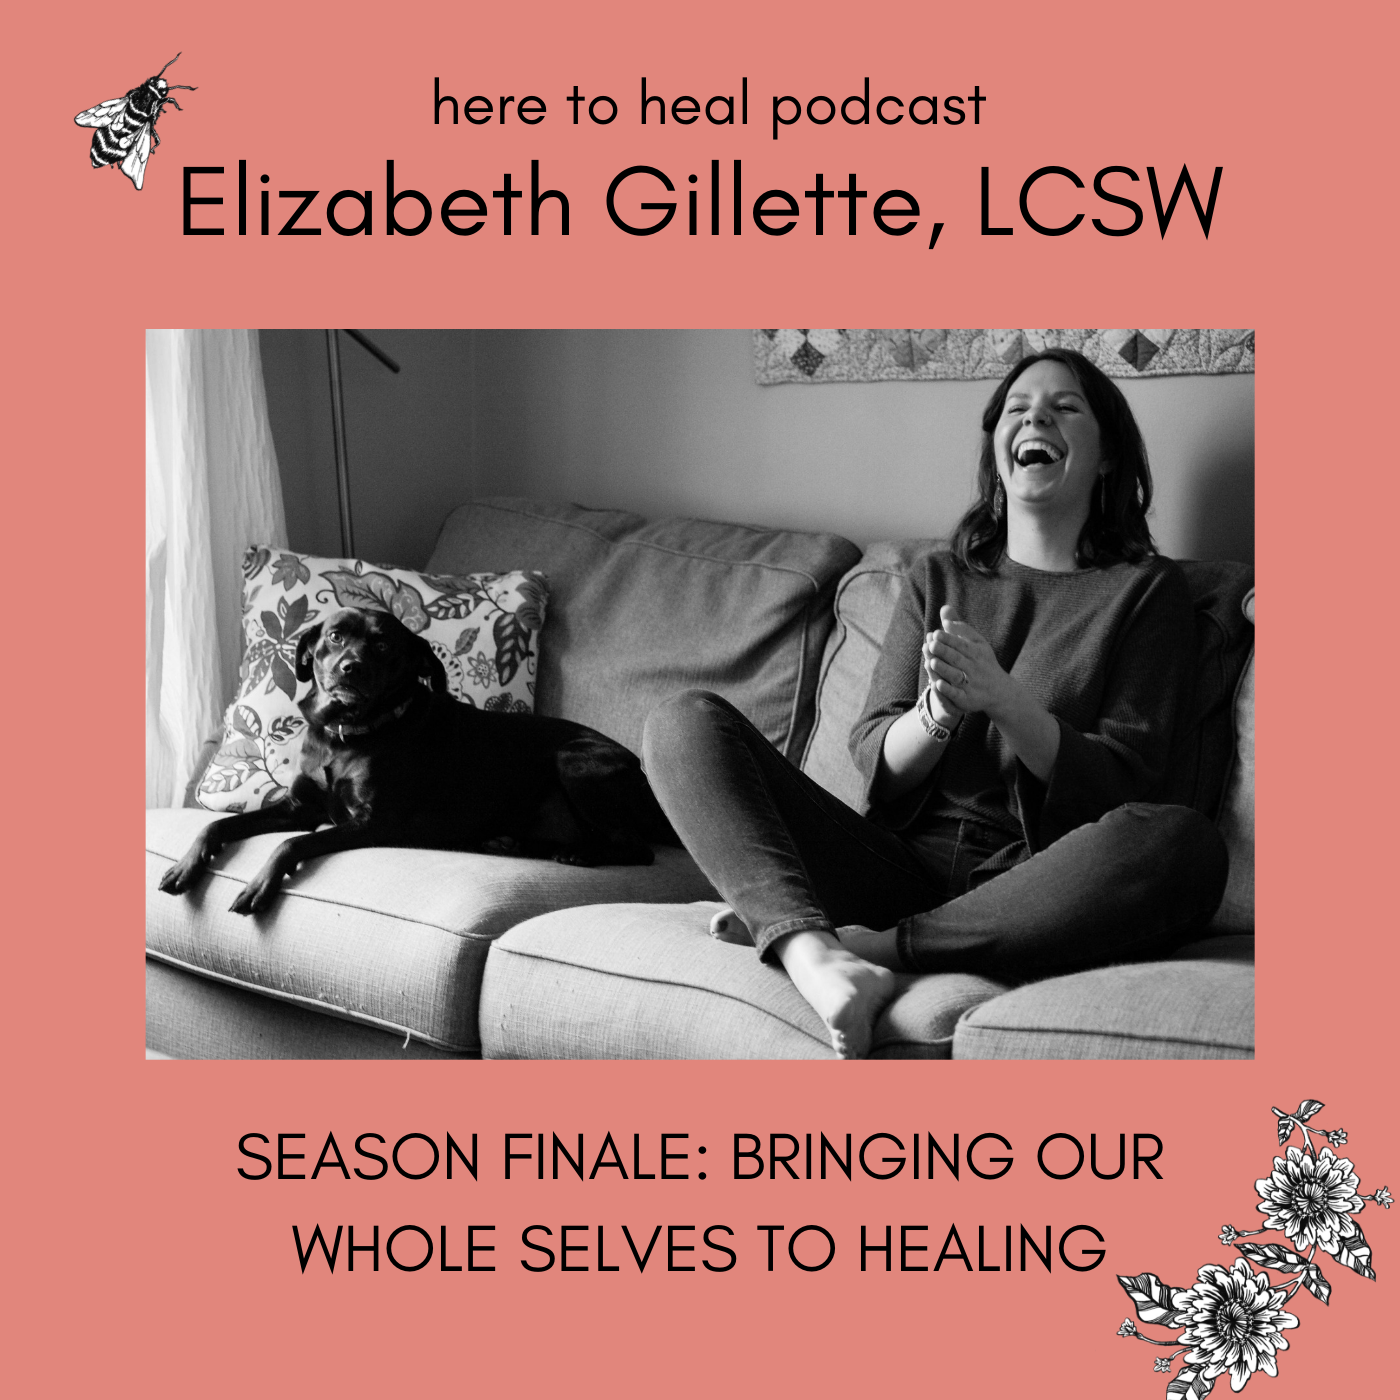 Season Finale - Bringing Our Whole Selves to Healing